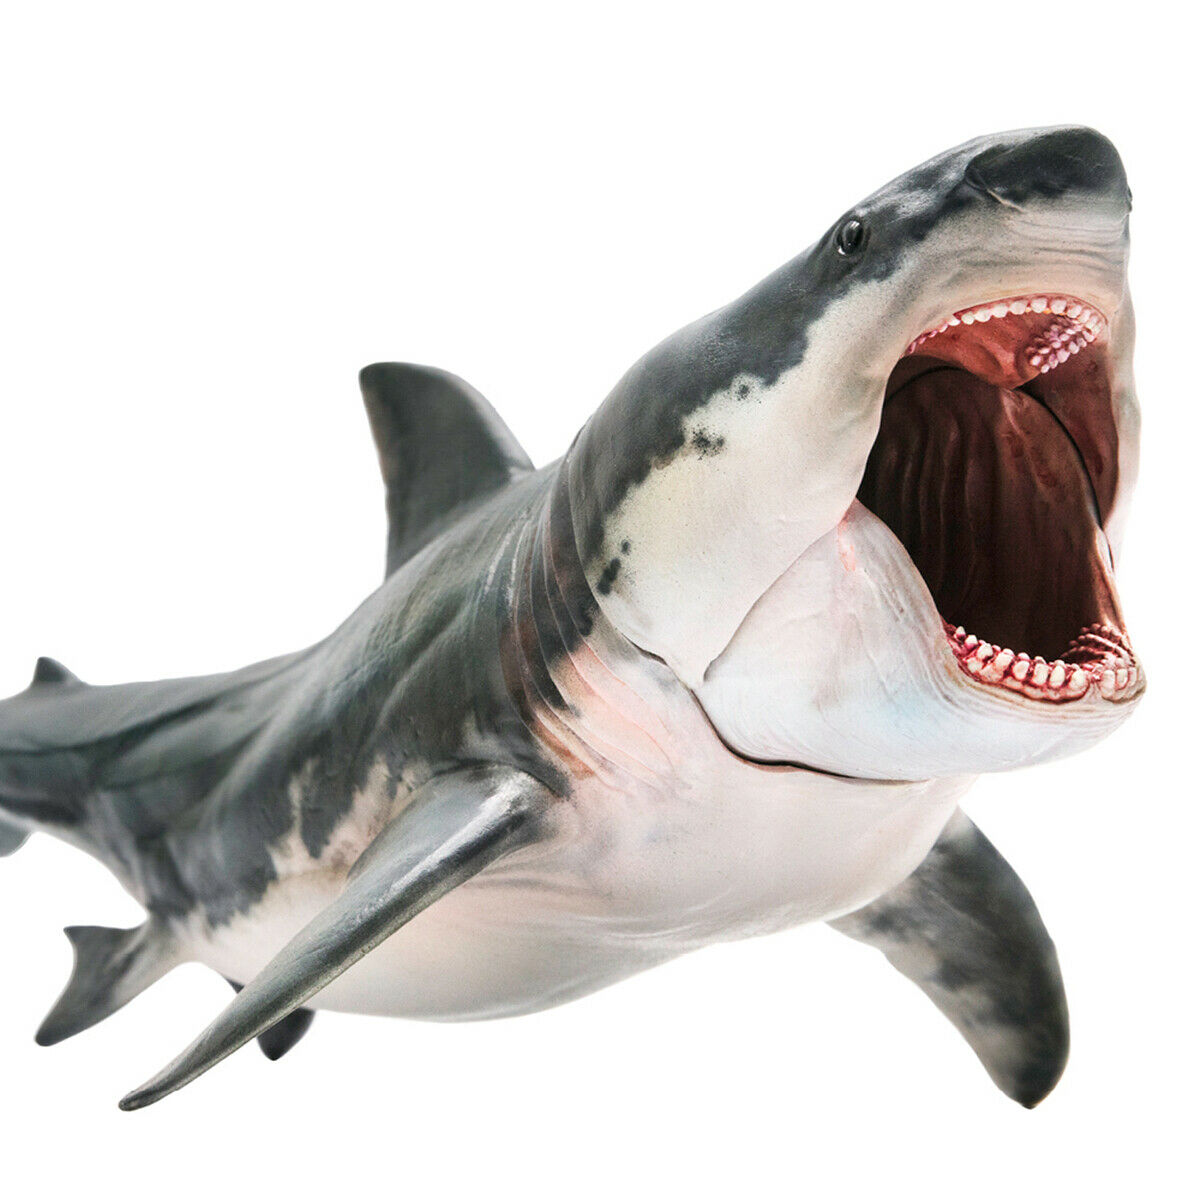 PNSO Megalodon Model Figure Action Shark Prehistoric Ocean Animal Adult Kids Collection Science Education Toys Gift Home Decor